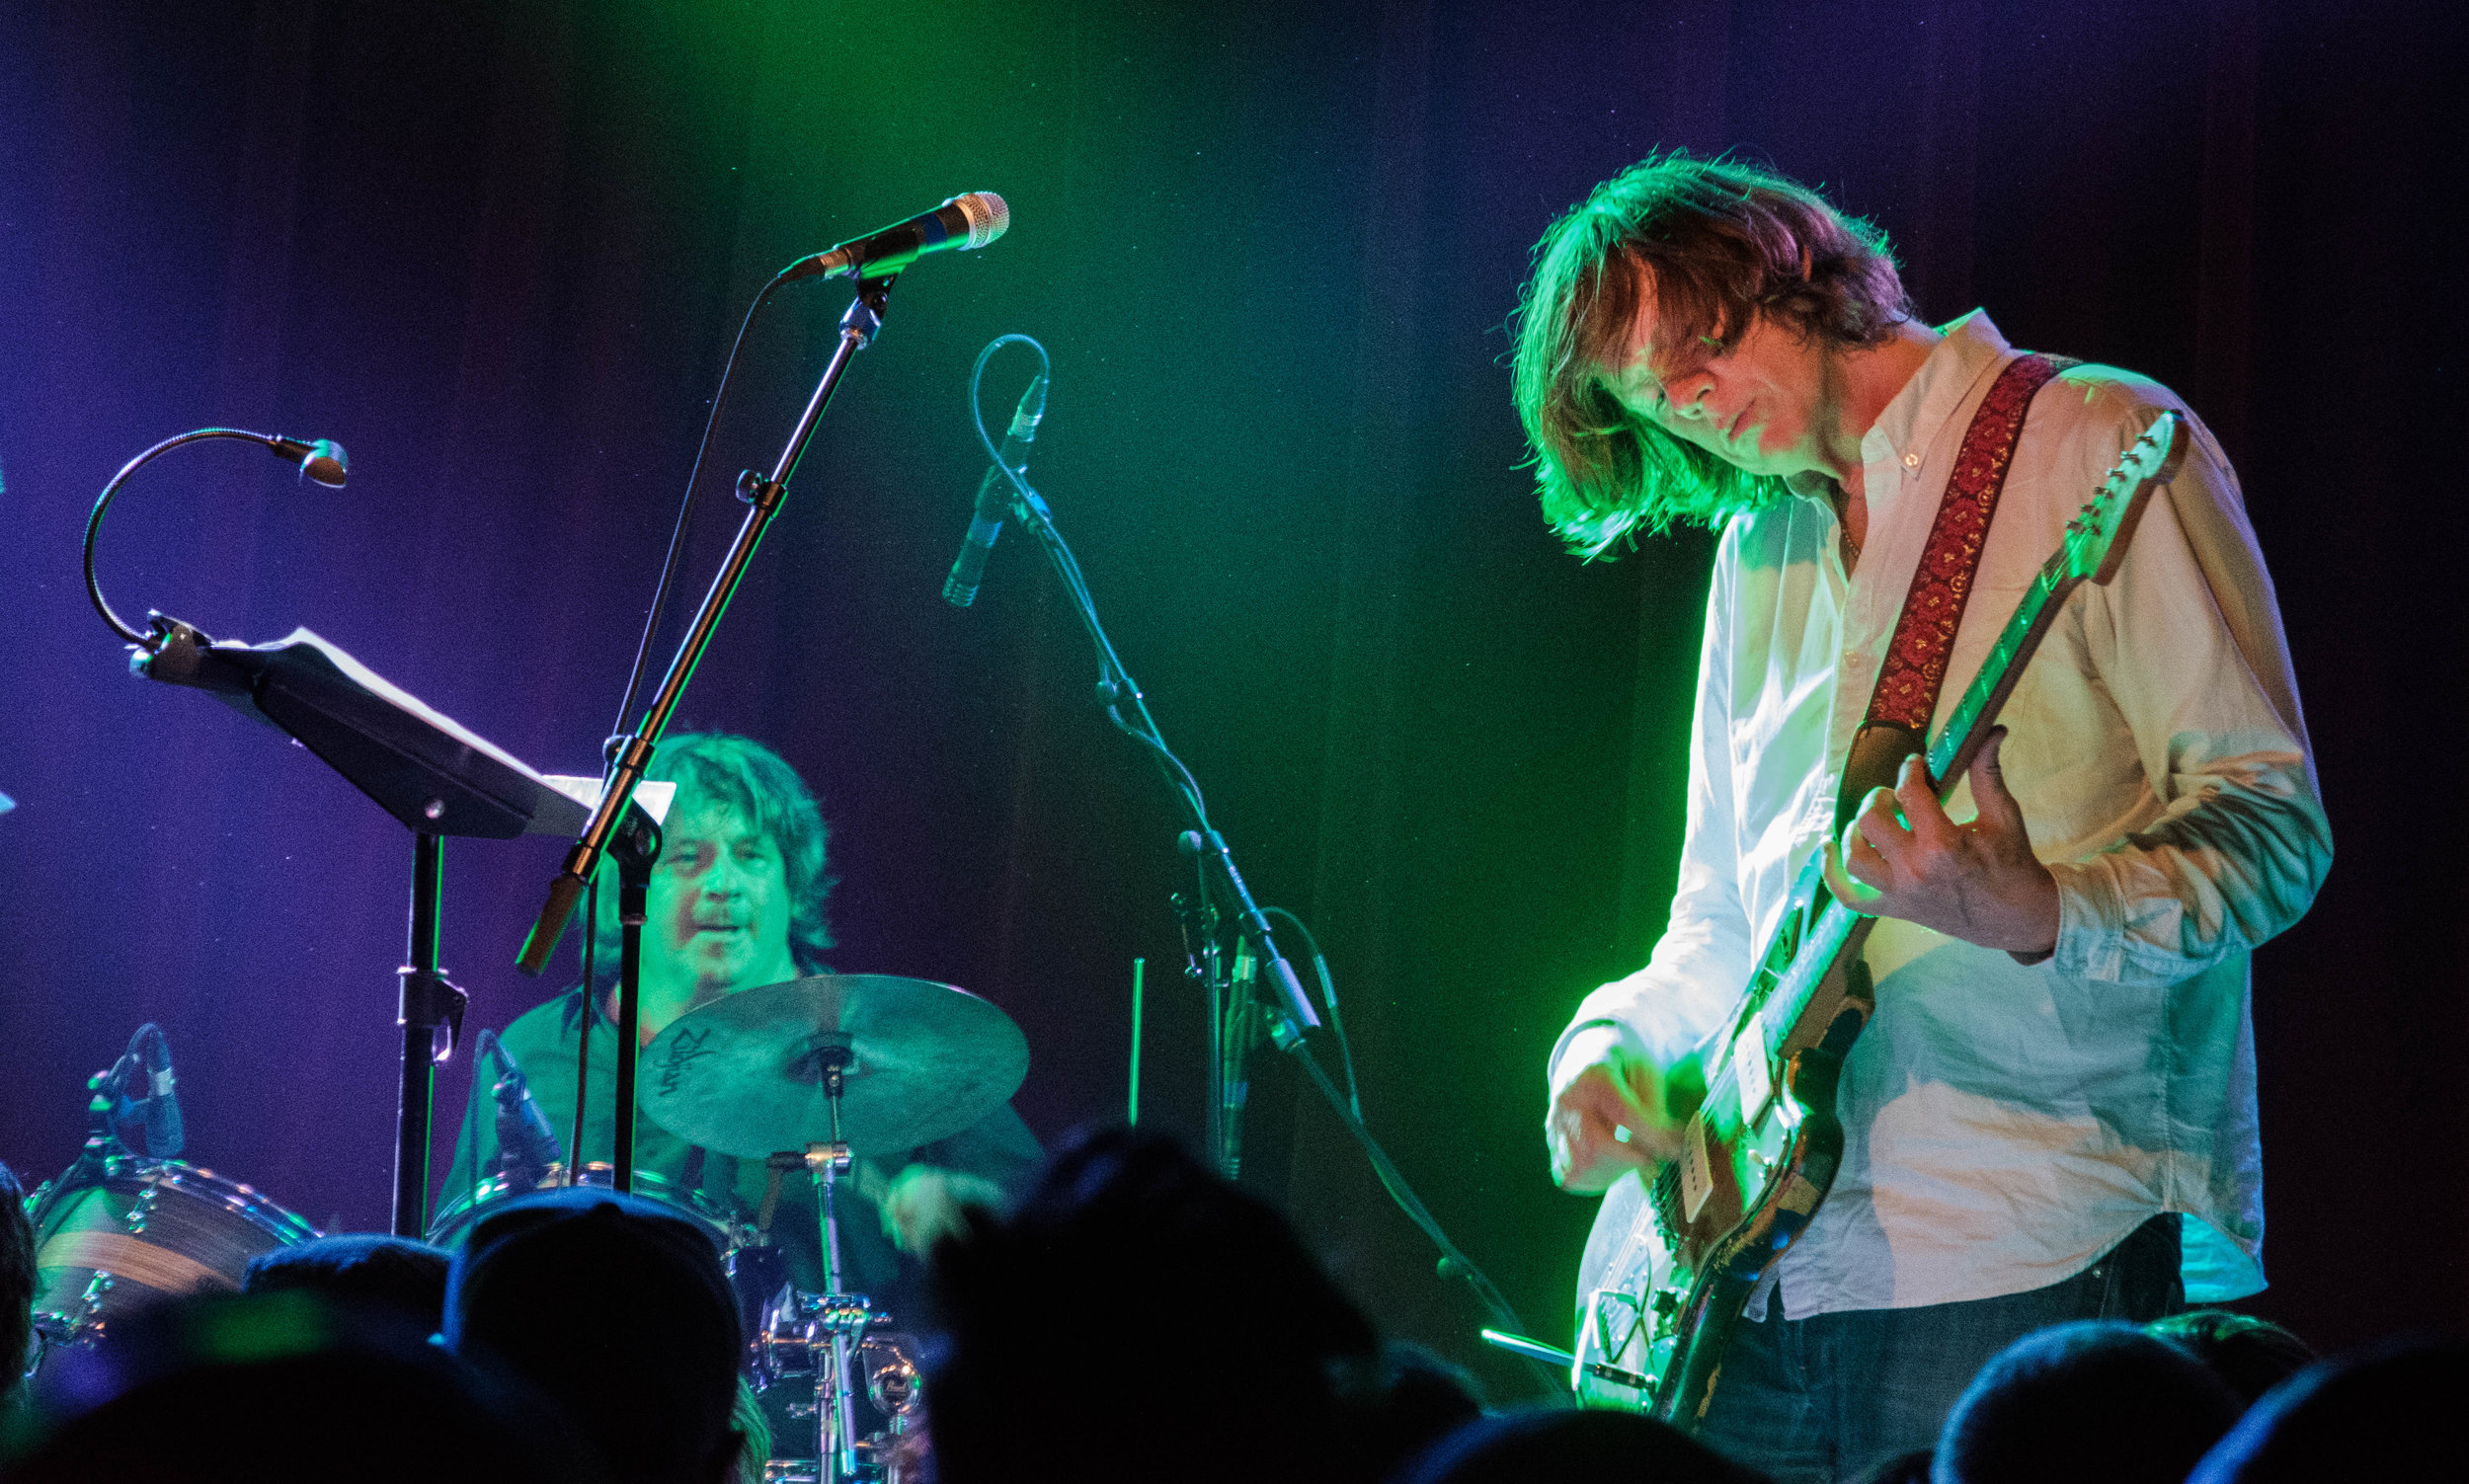 Thurston Moore Group TM and Drummer